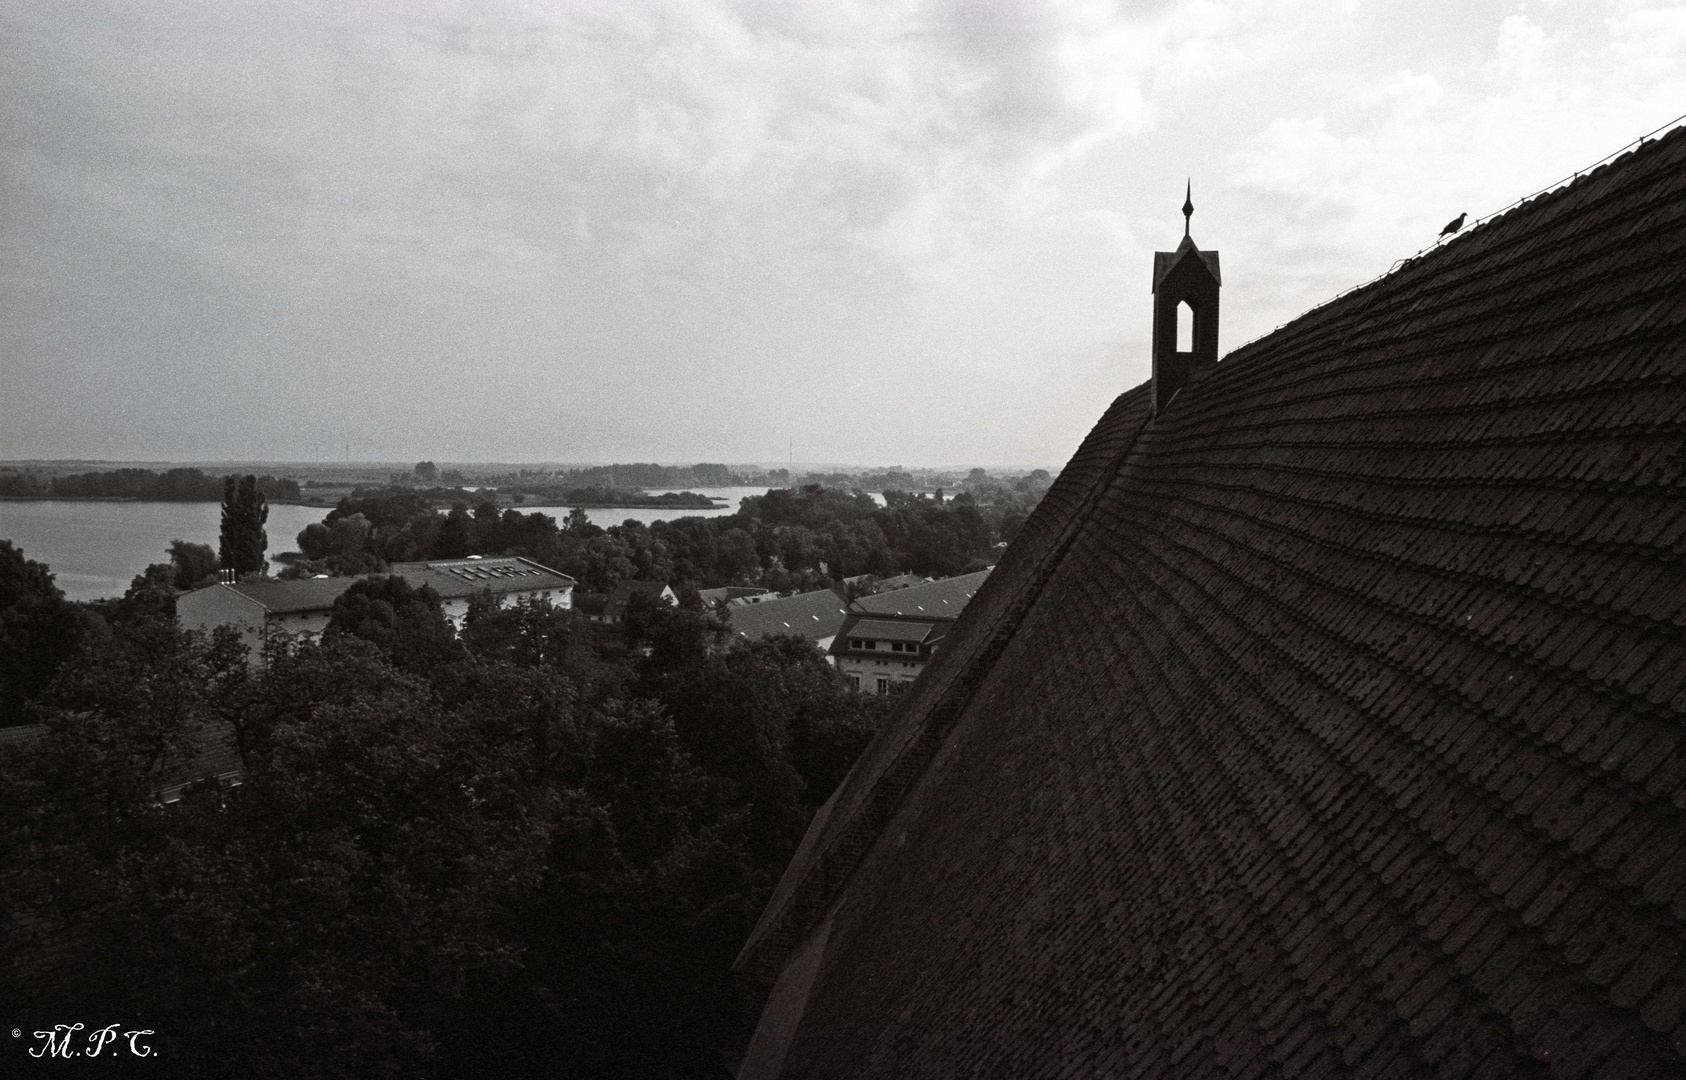 View from St. Mary's Church, Angermuende